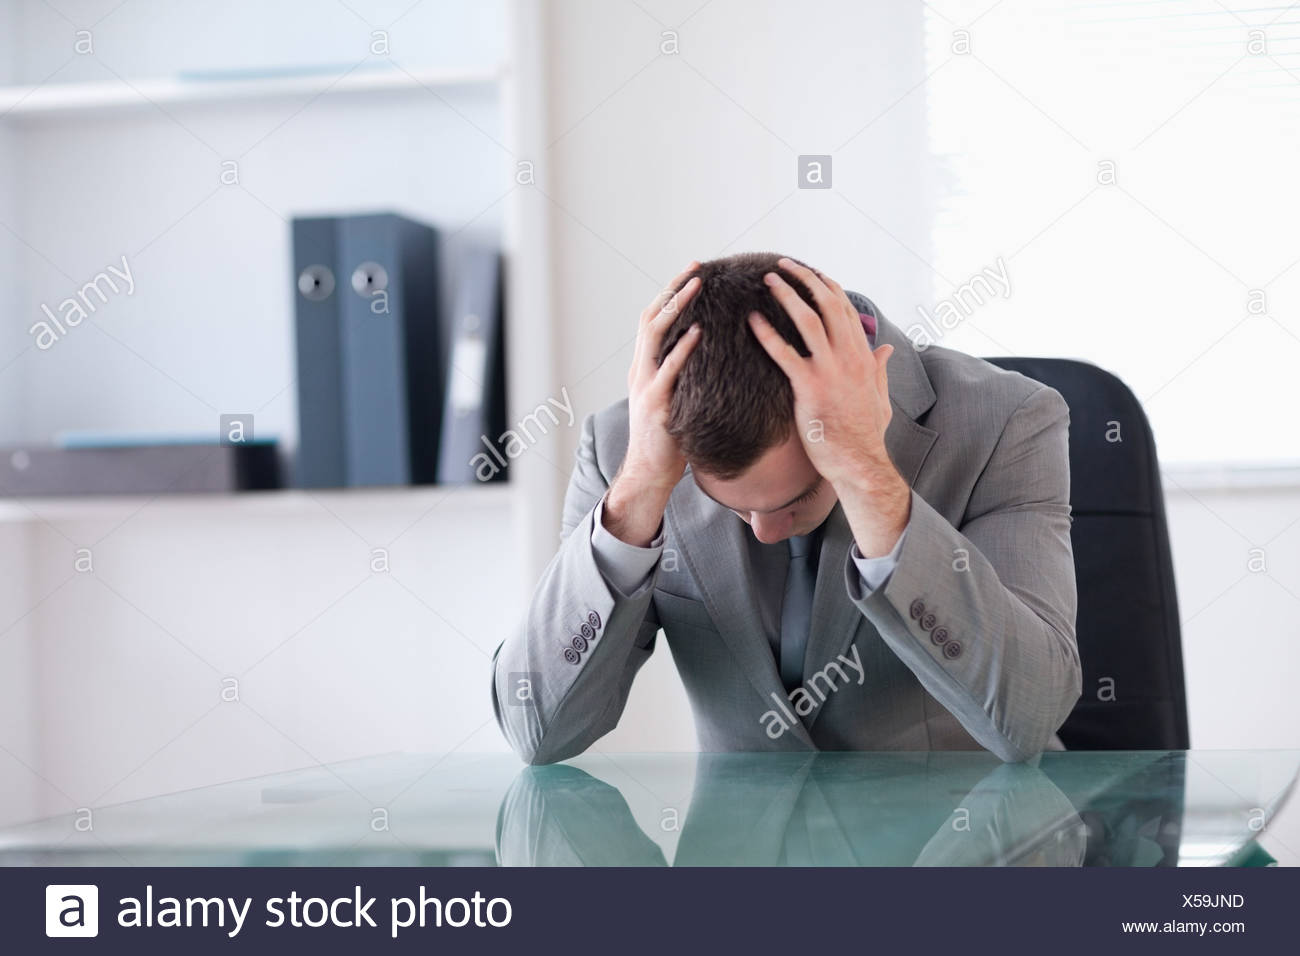 Businessman after failed negotiation - Stock Image